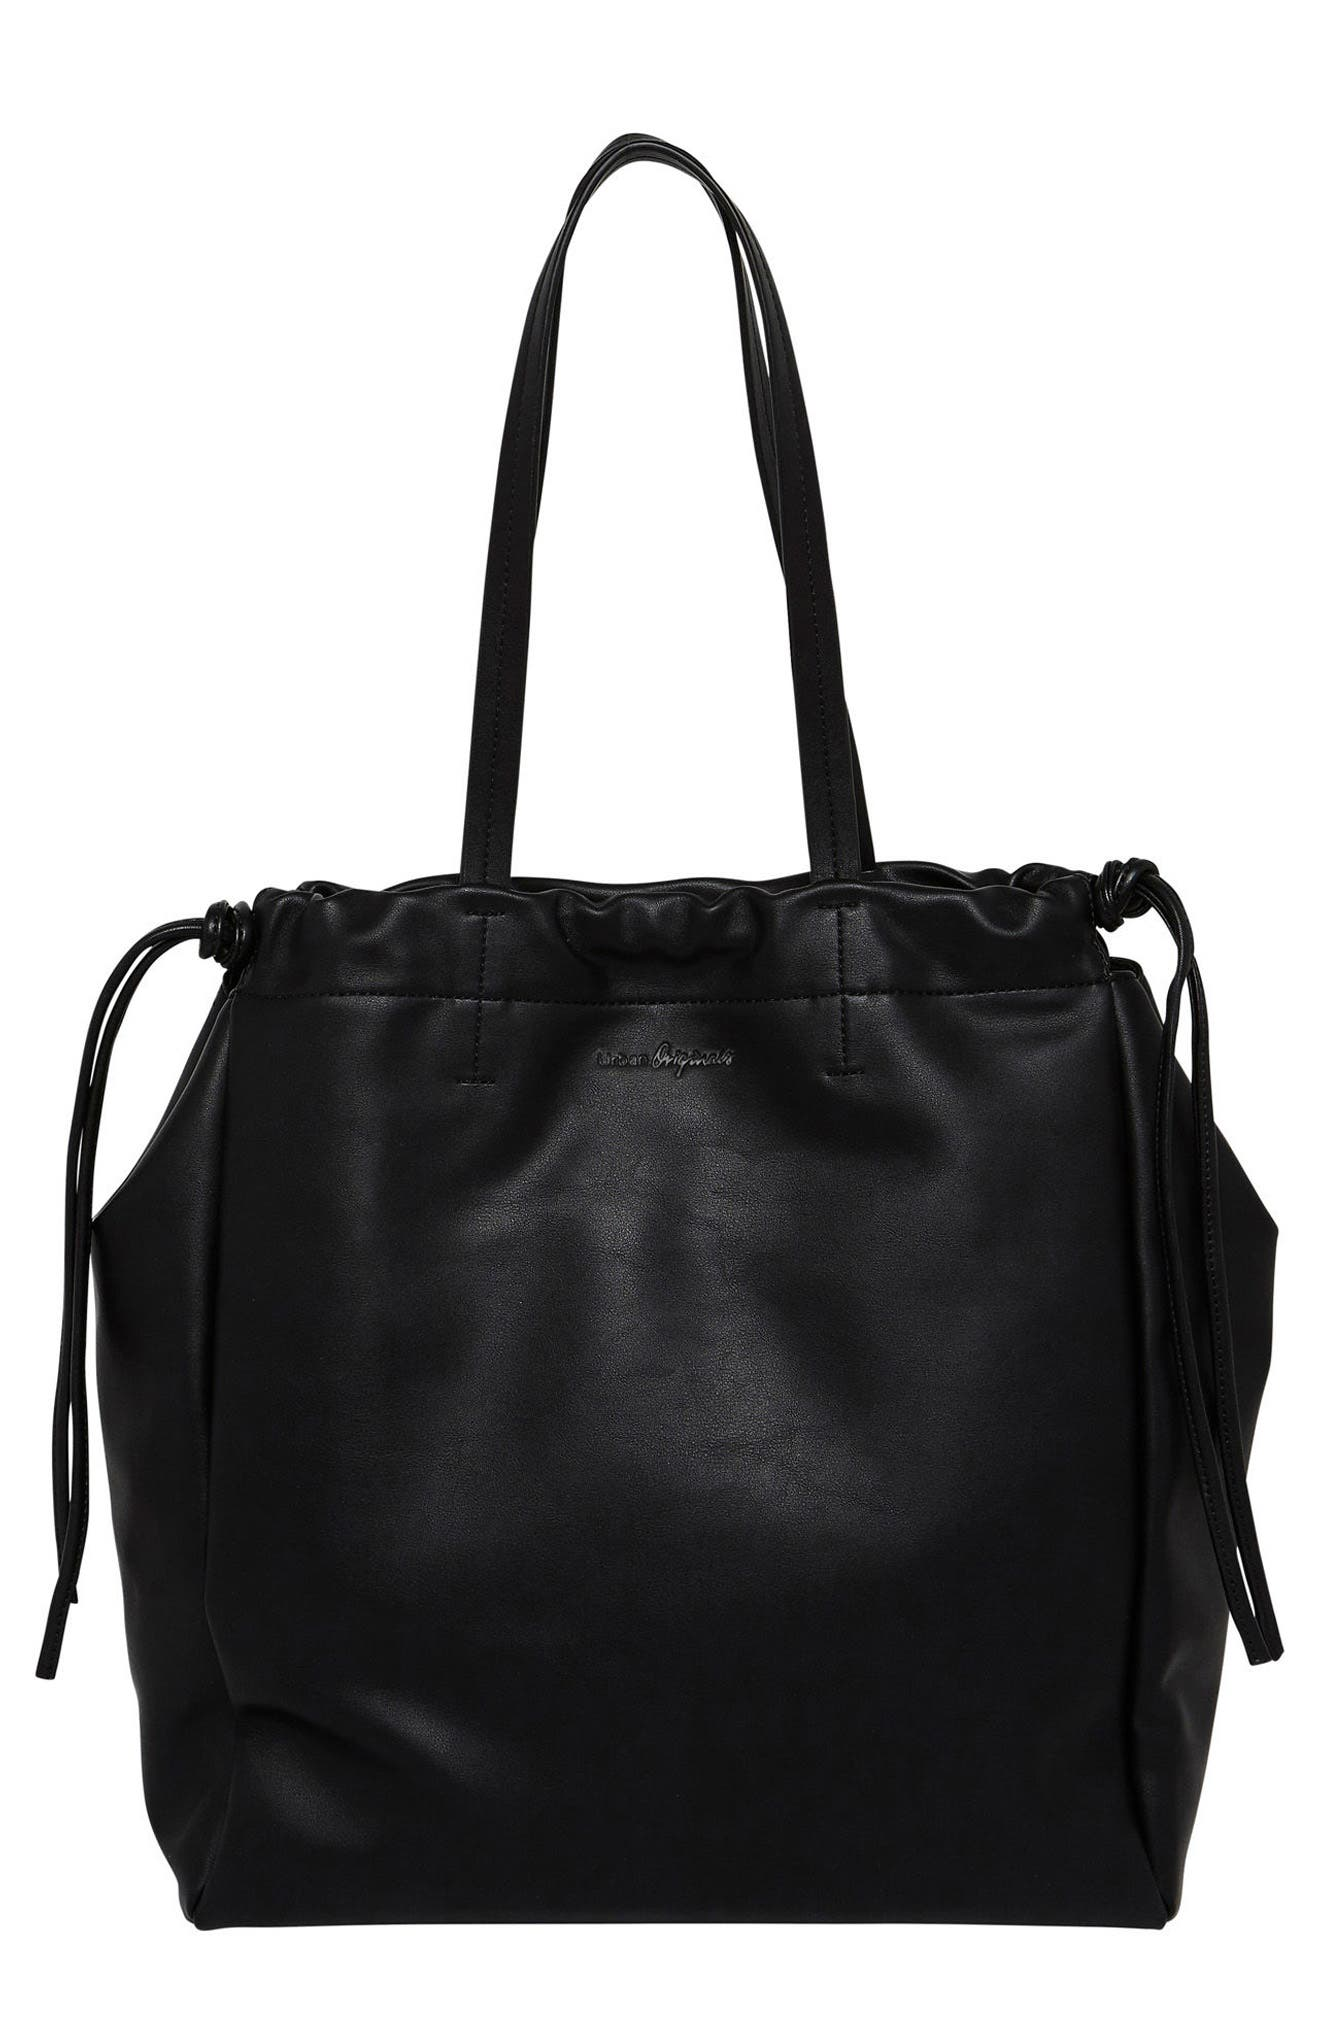 Light & Shadows Vegan Leather Tote,                         Main,                         color, 001